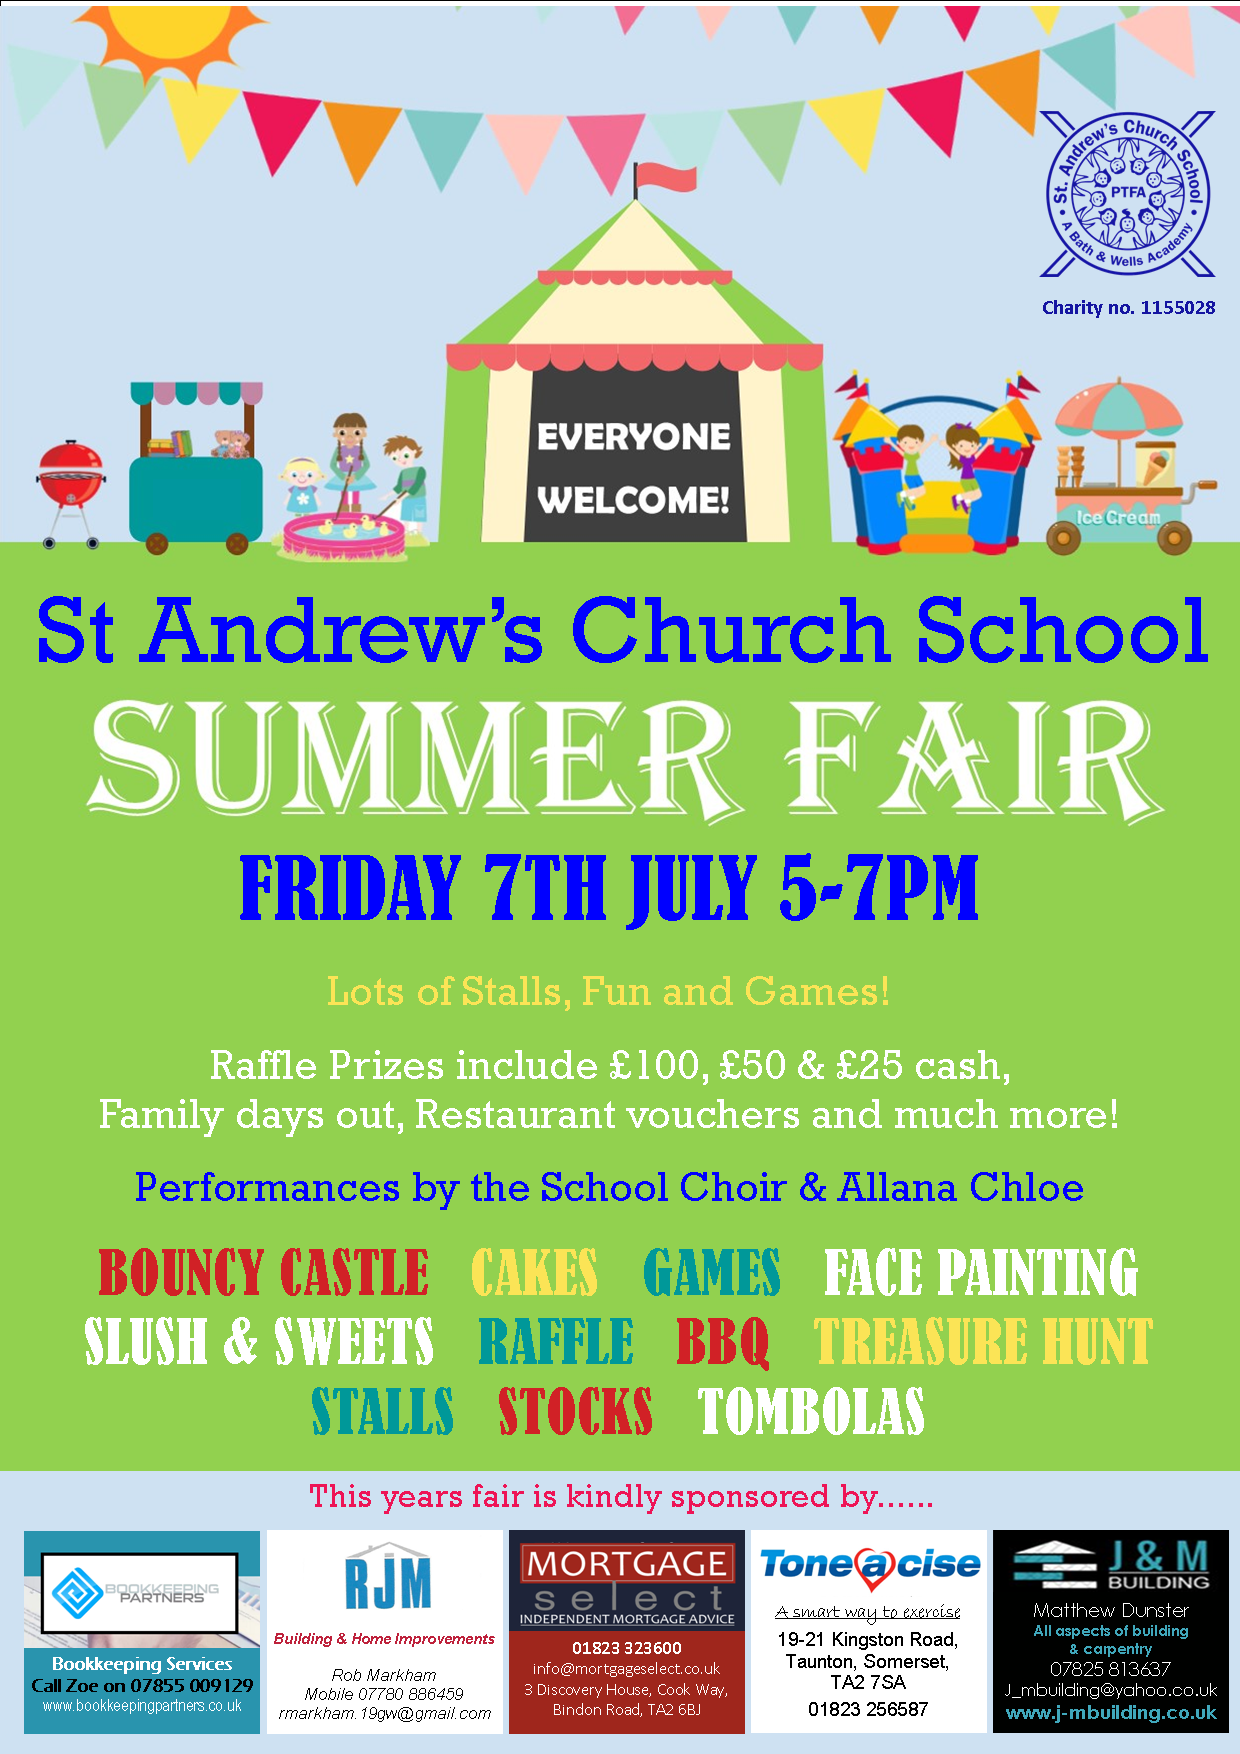 Summer Fair @ St Andrews Church School @ St Andrews Church School | England | United Kingdom